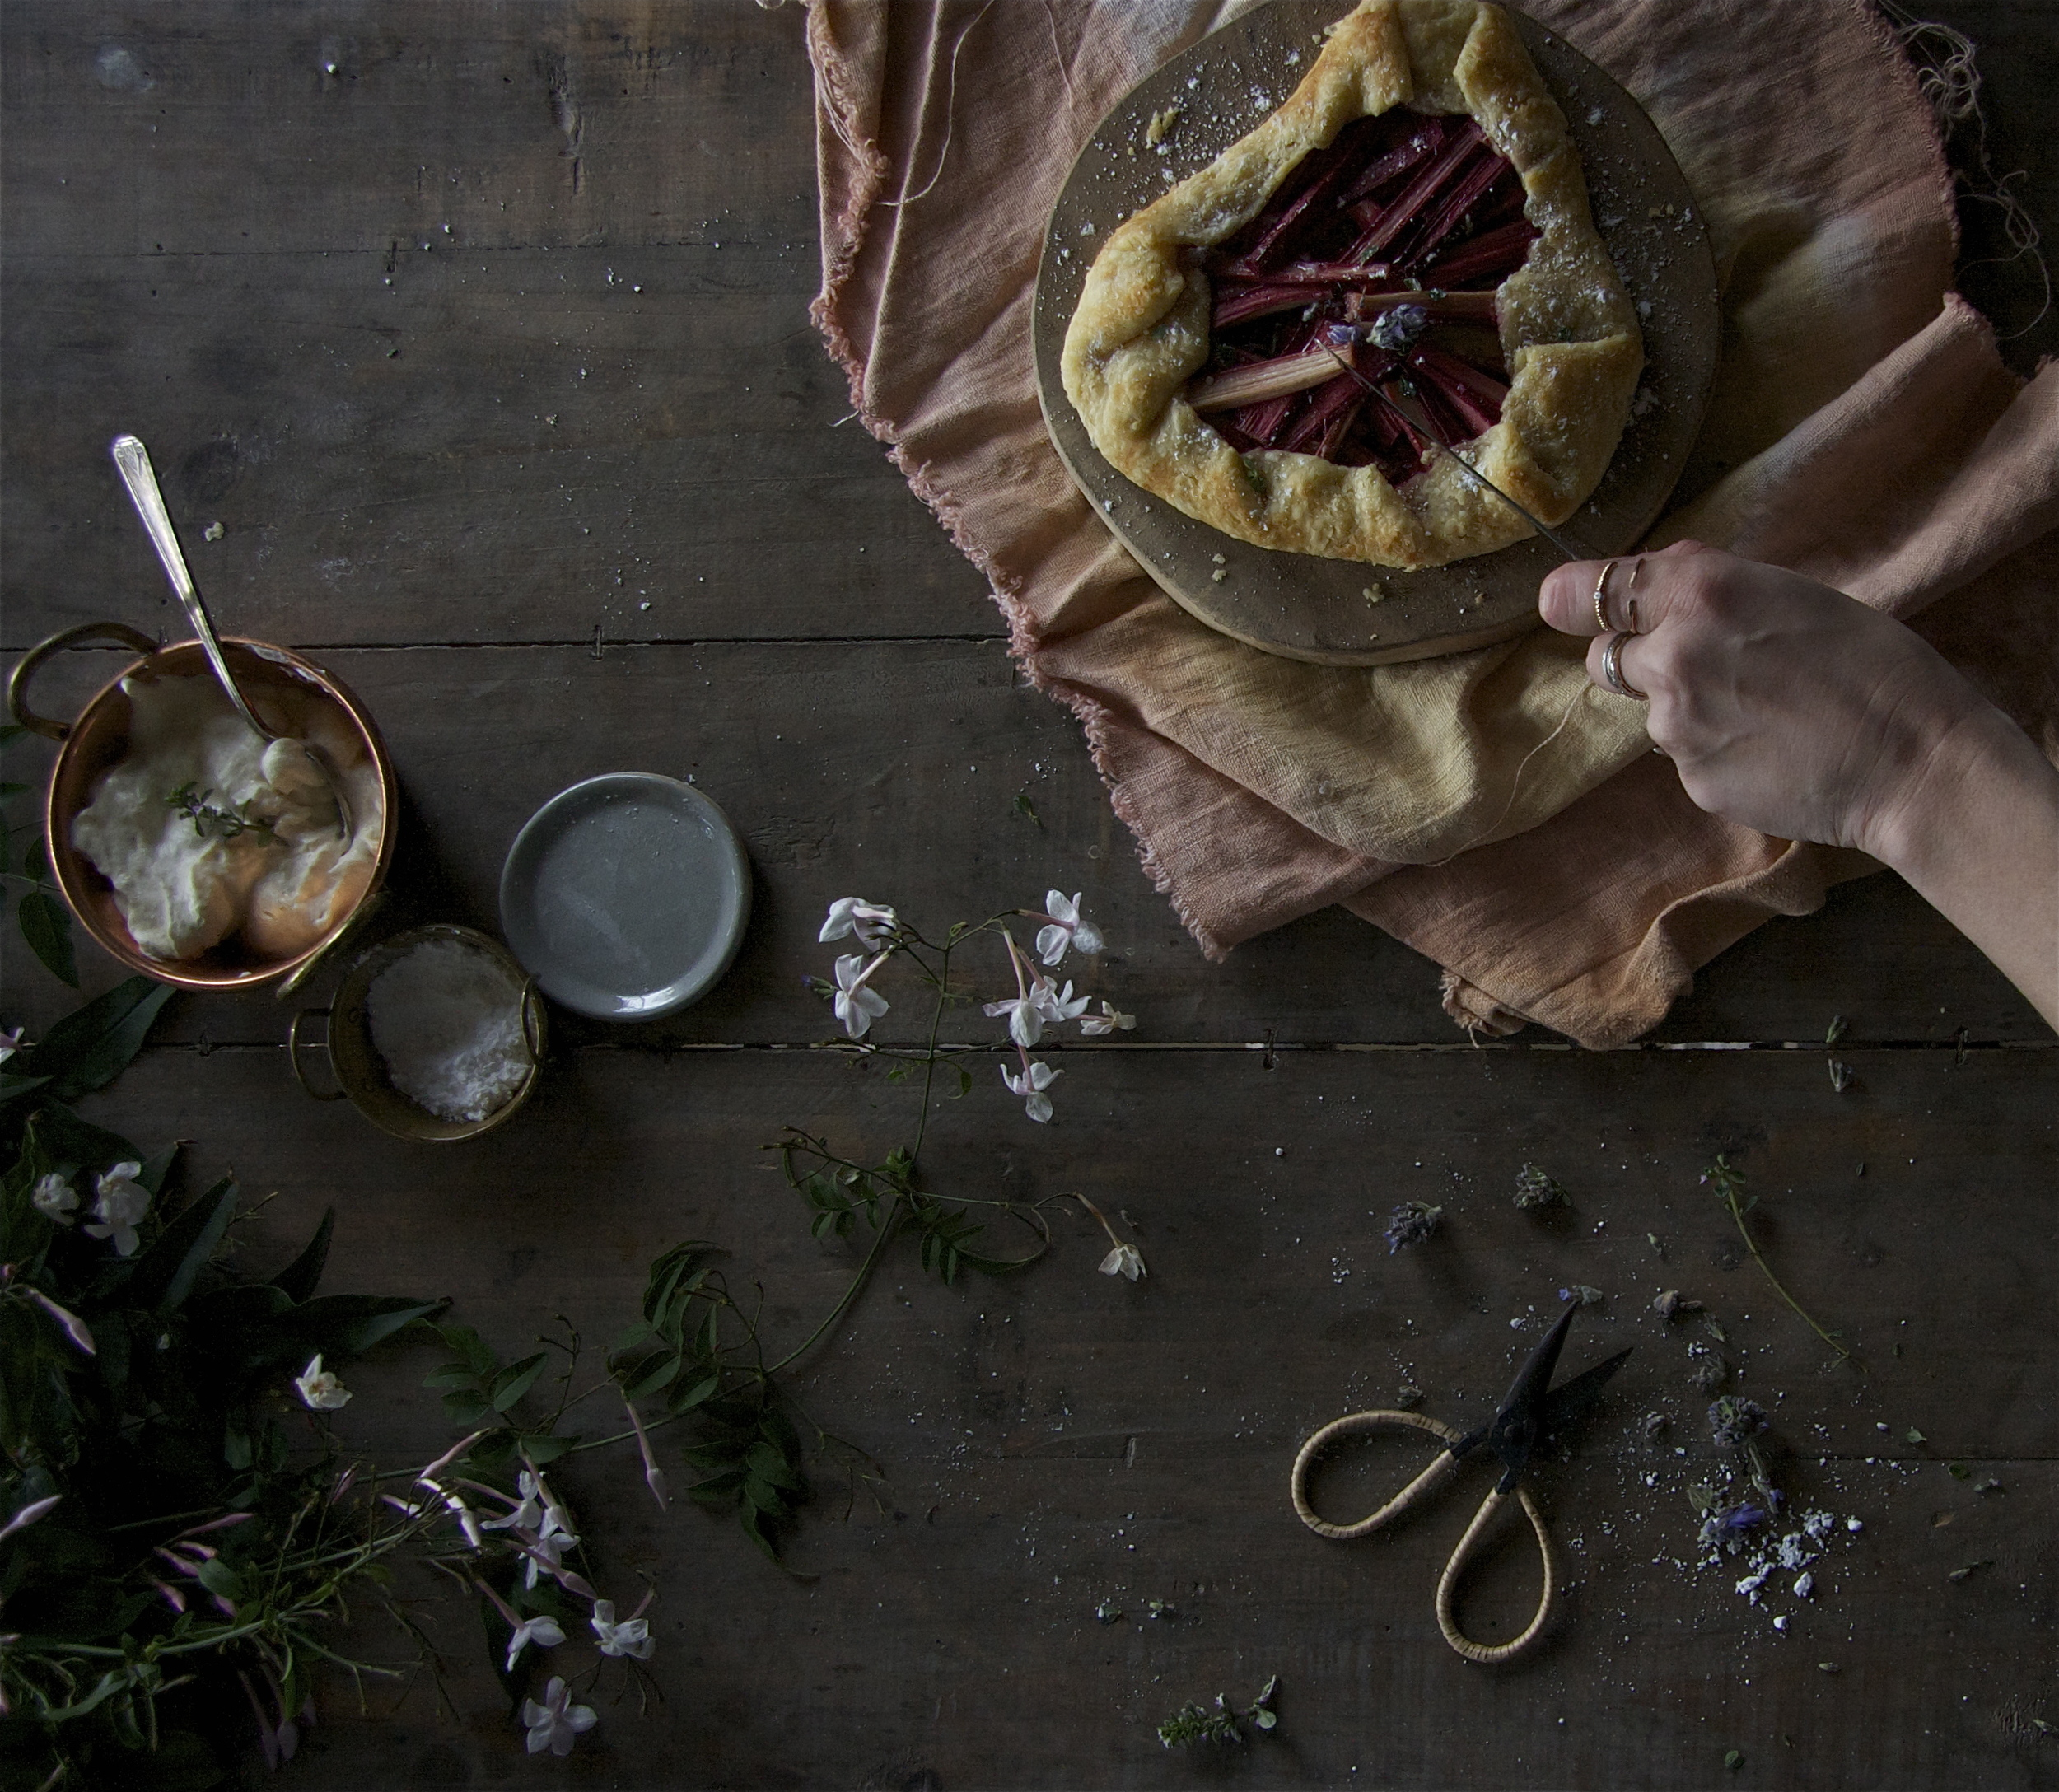 Beth made these rhubarb galettes and as soon as we finished shooting them, Cecille, my styling partner for the day, and I demolished them with matched levels of greed/enjoyment. Nothing better than eating with someone who loves eating.